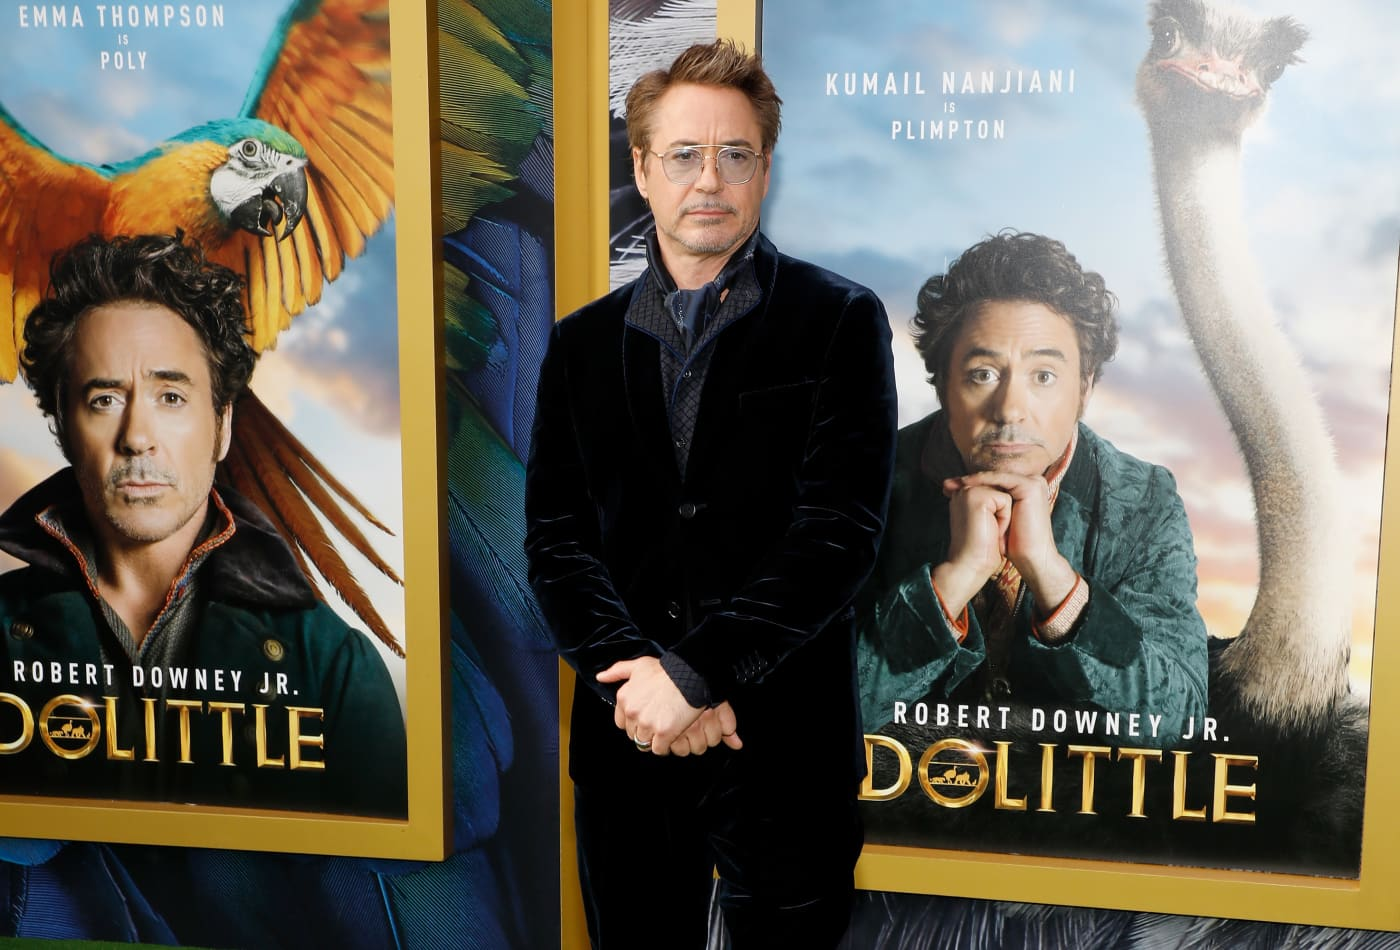 'Dolittle' is 'shockingly unfunny,' 'sloppy' and 'unpleasant,' critics say